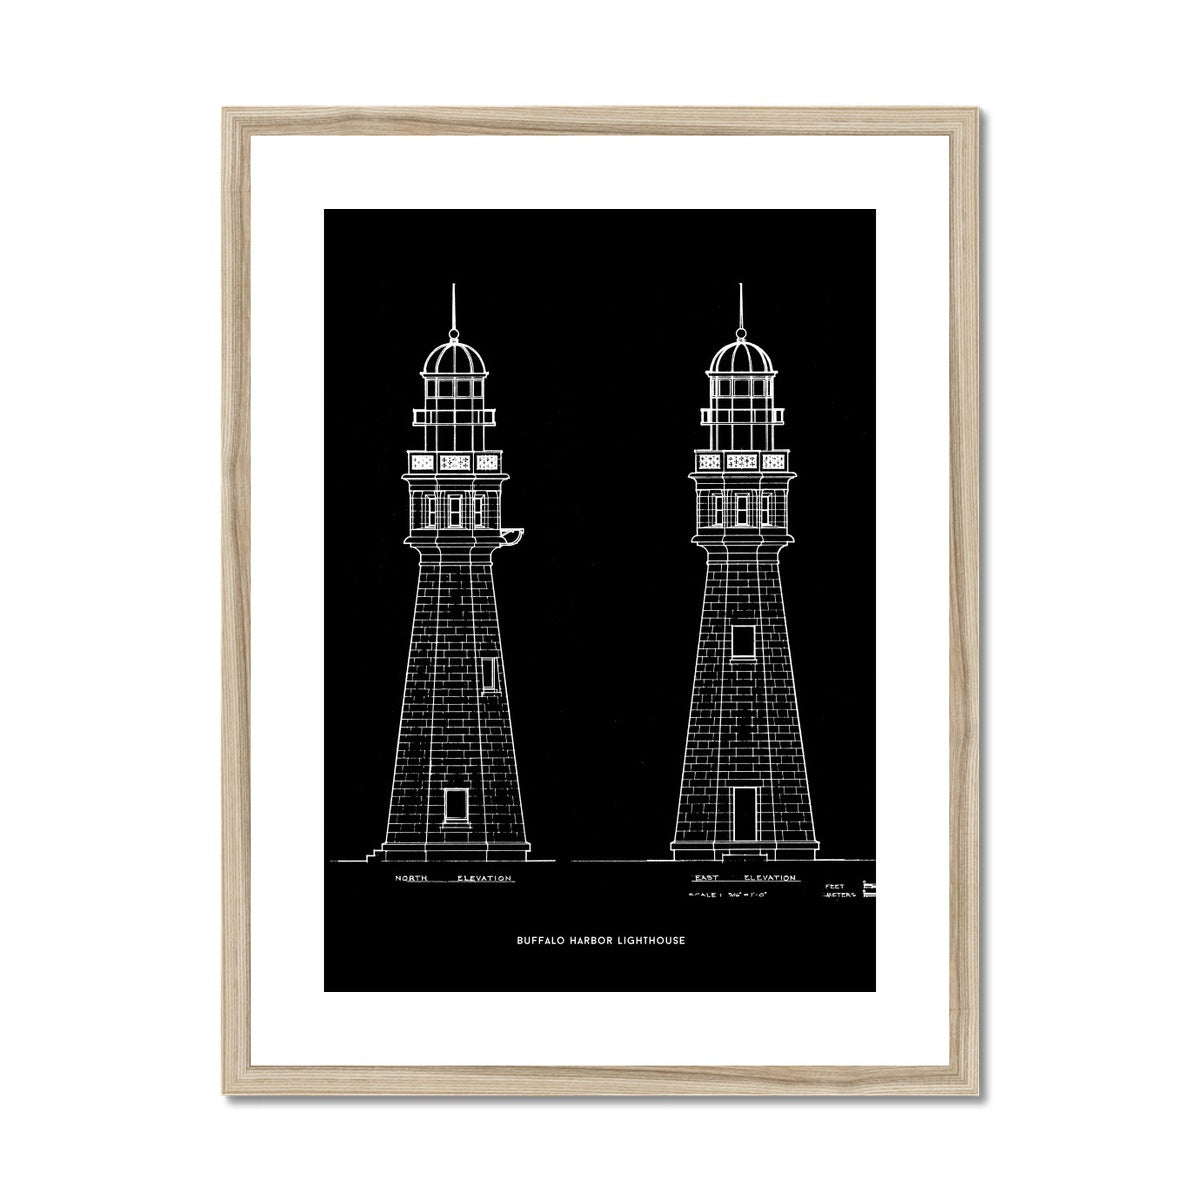 Buffalo Harbor Lighthouse - North and East Elevations - Black -  Framed & Mounted Print